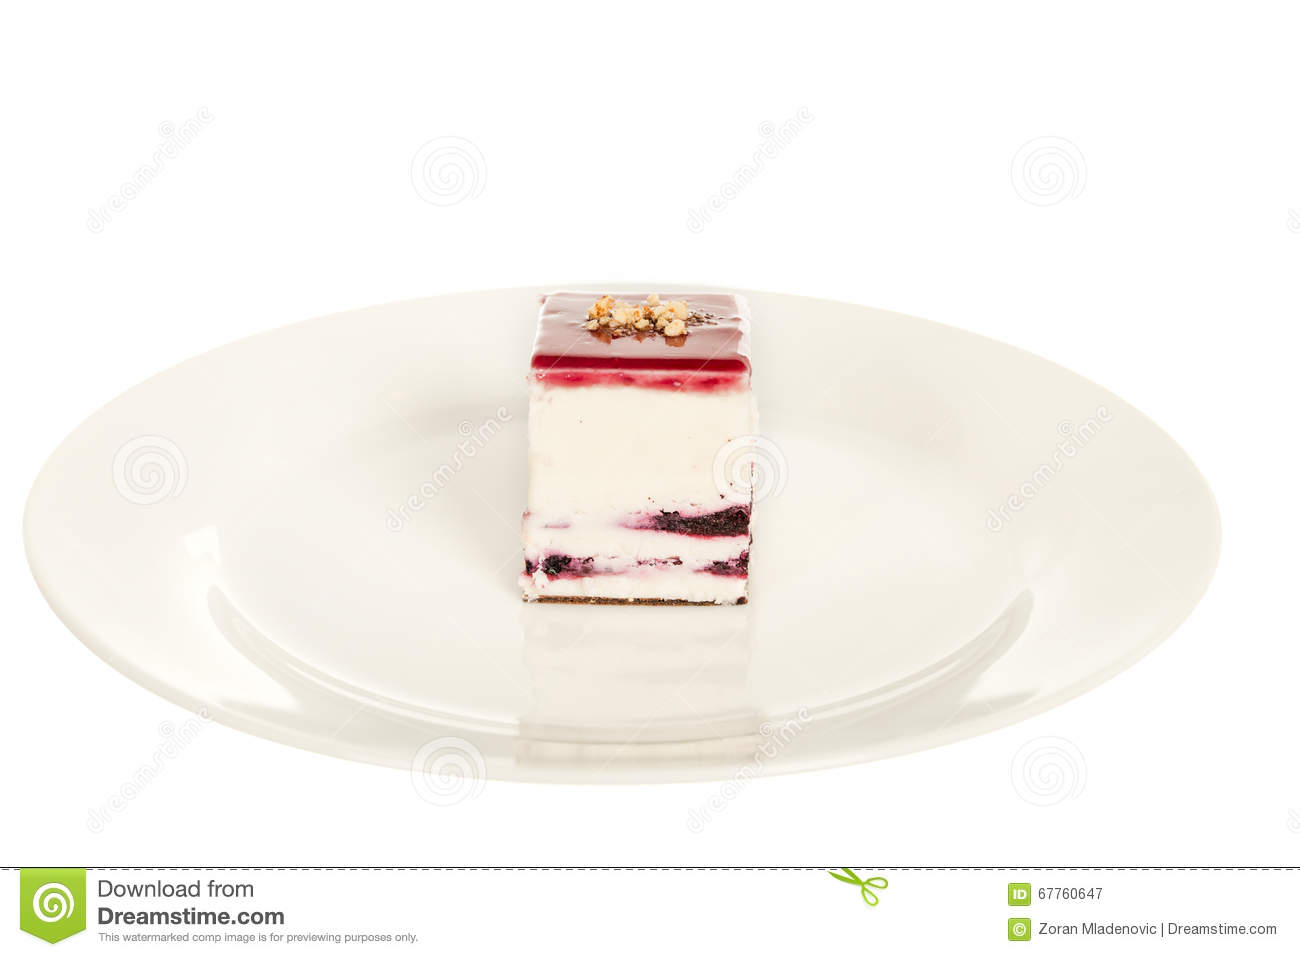 Fond gateau fromage